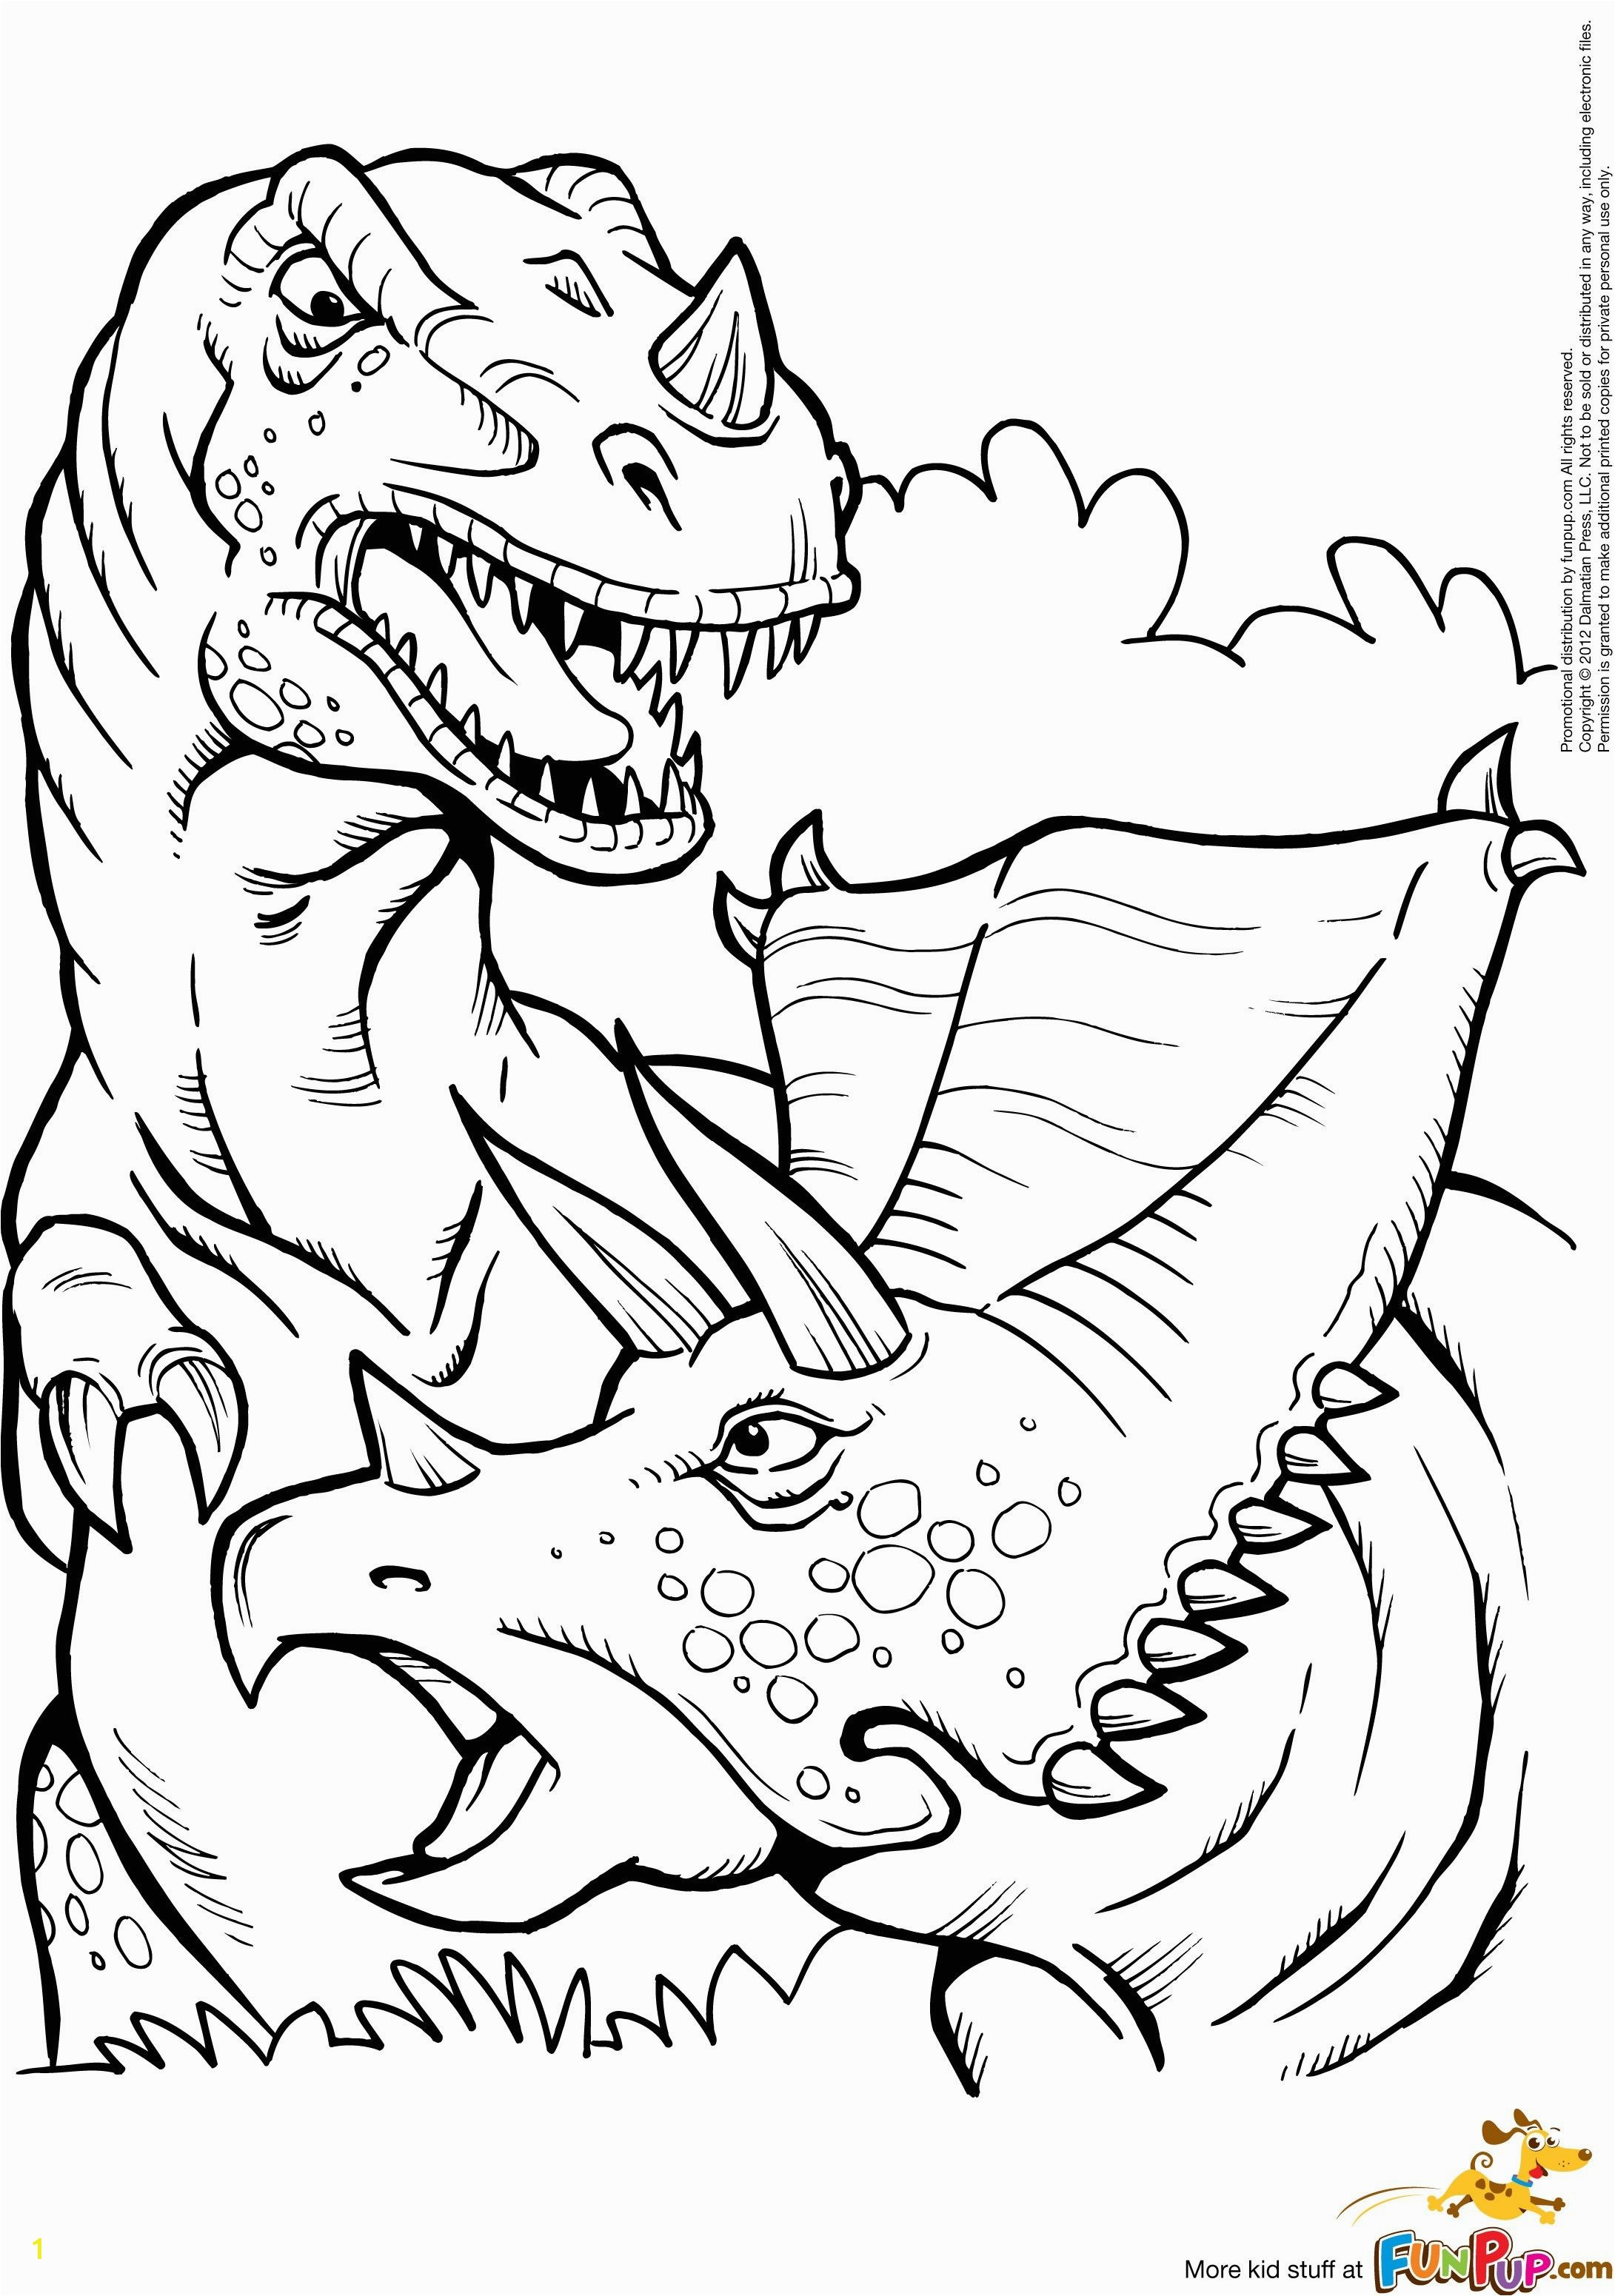 Kleurplaat printable t rex and triceratops coloring page